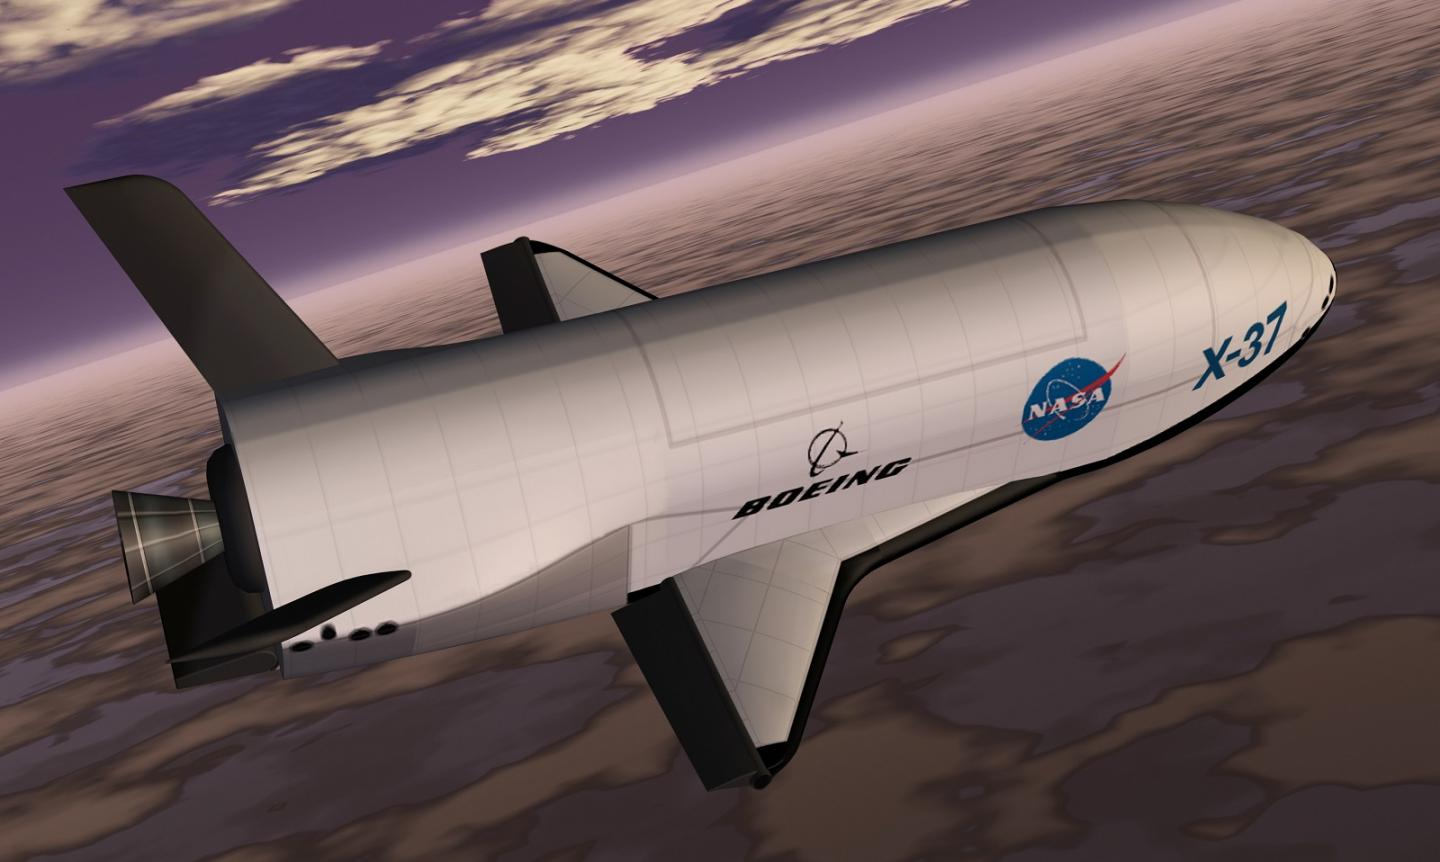 Photographed: The U.S. Air Force's Secretive Robot X-37B Space Shuttle